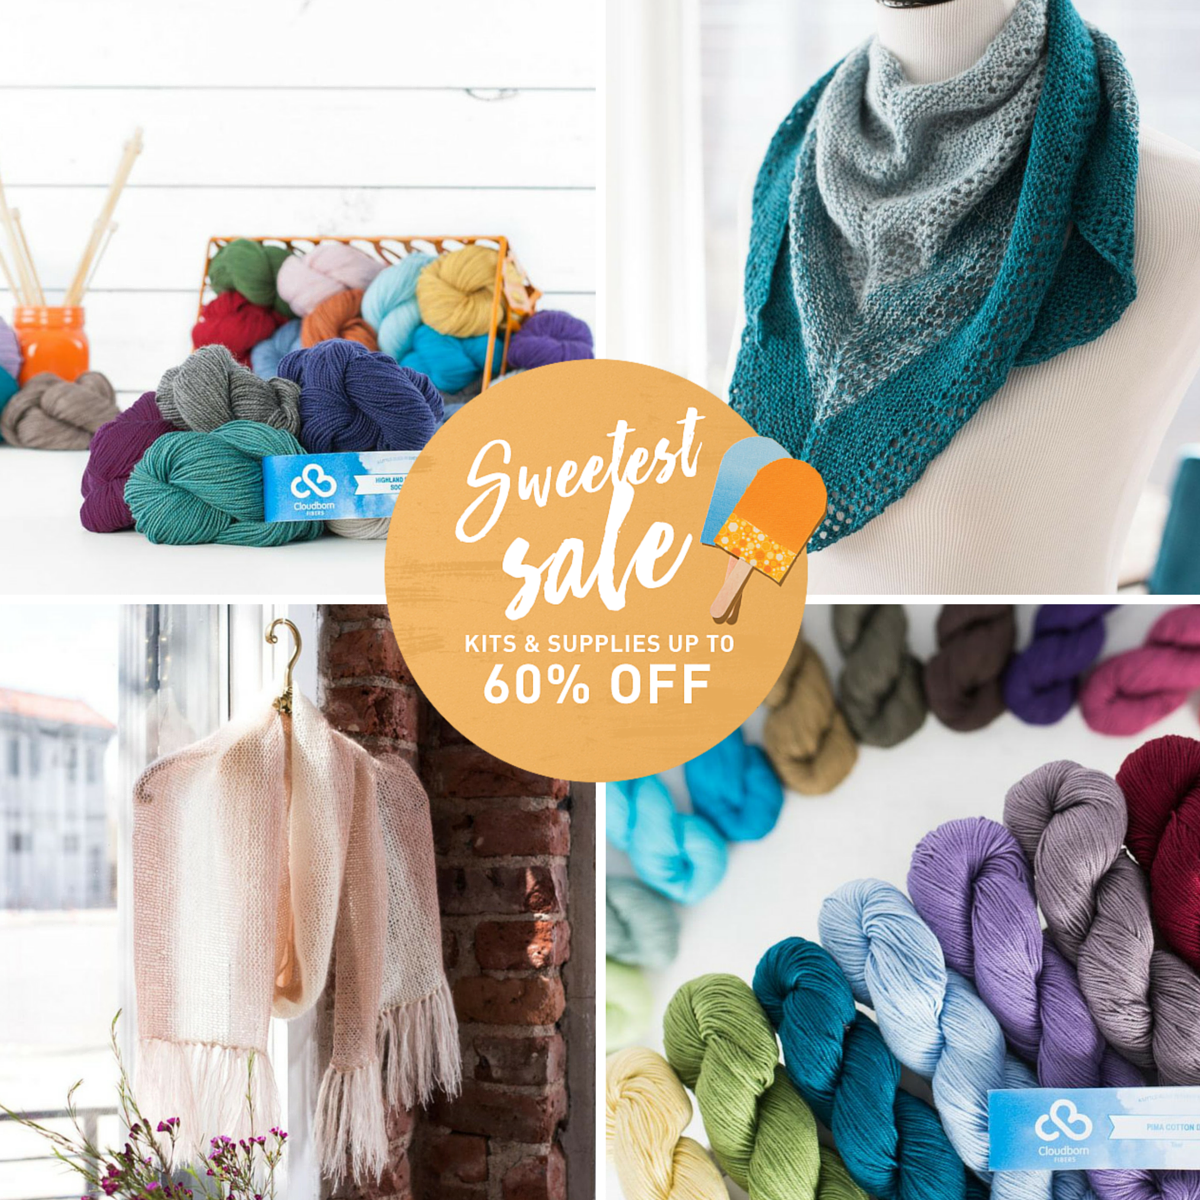 Craftsy June Supplies Sale is officially LIVE